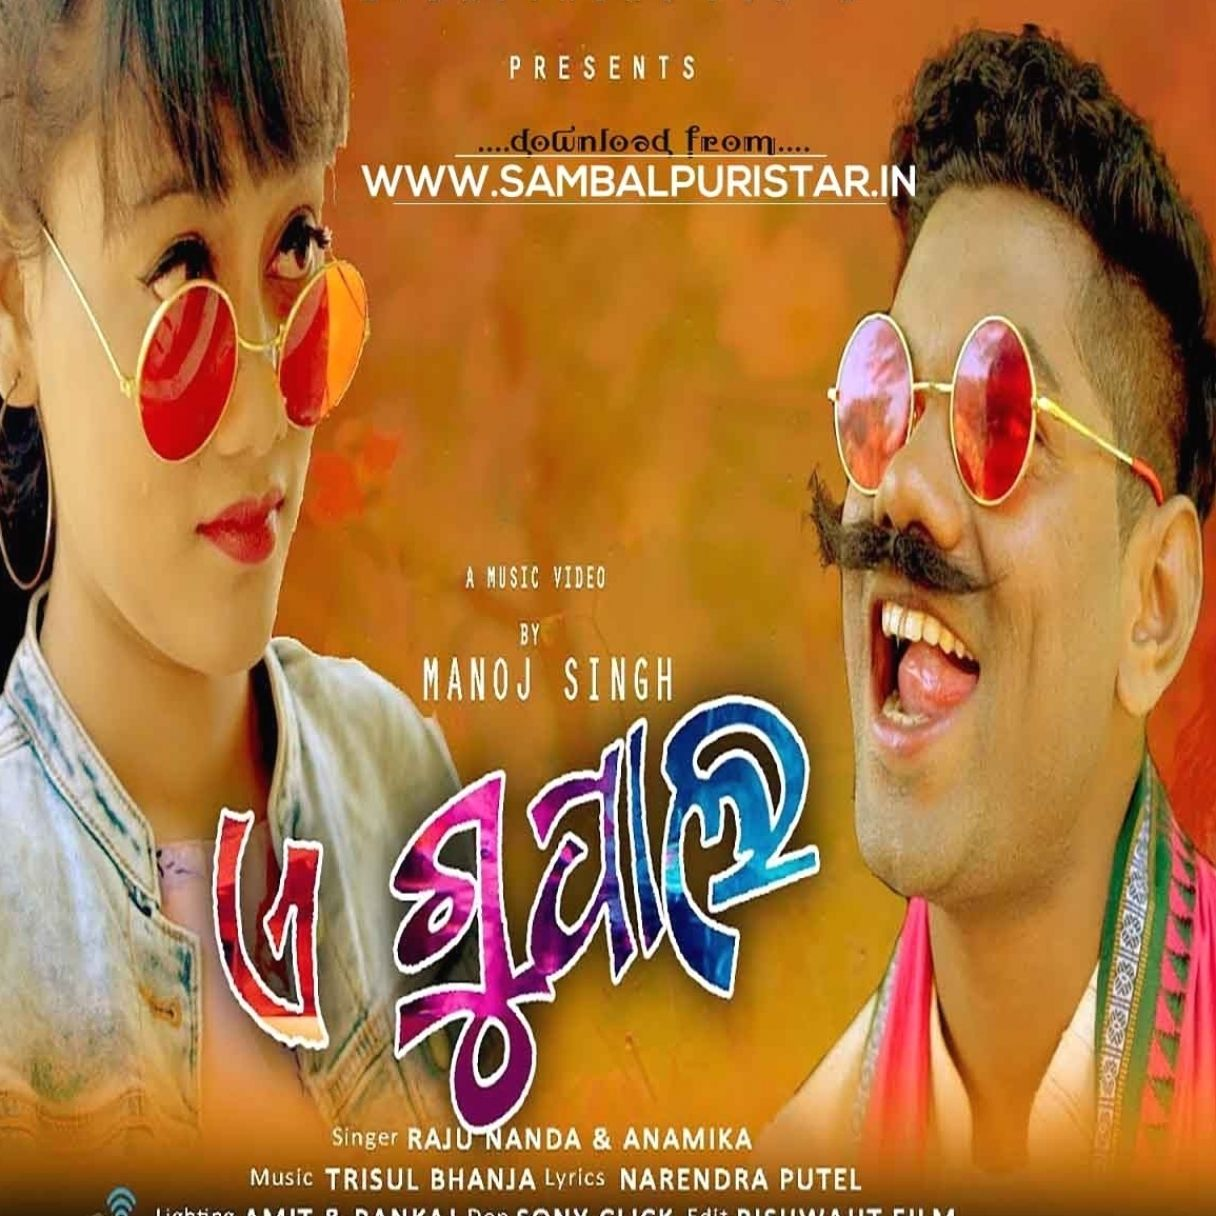 New Sambalpuri Song 2021 Mp3 Download Mp3 Song Free In 2021 Album Mp3 Song Download